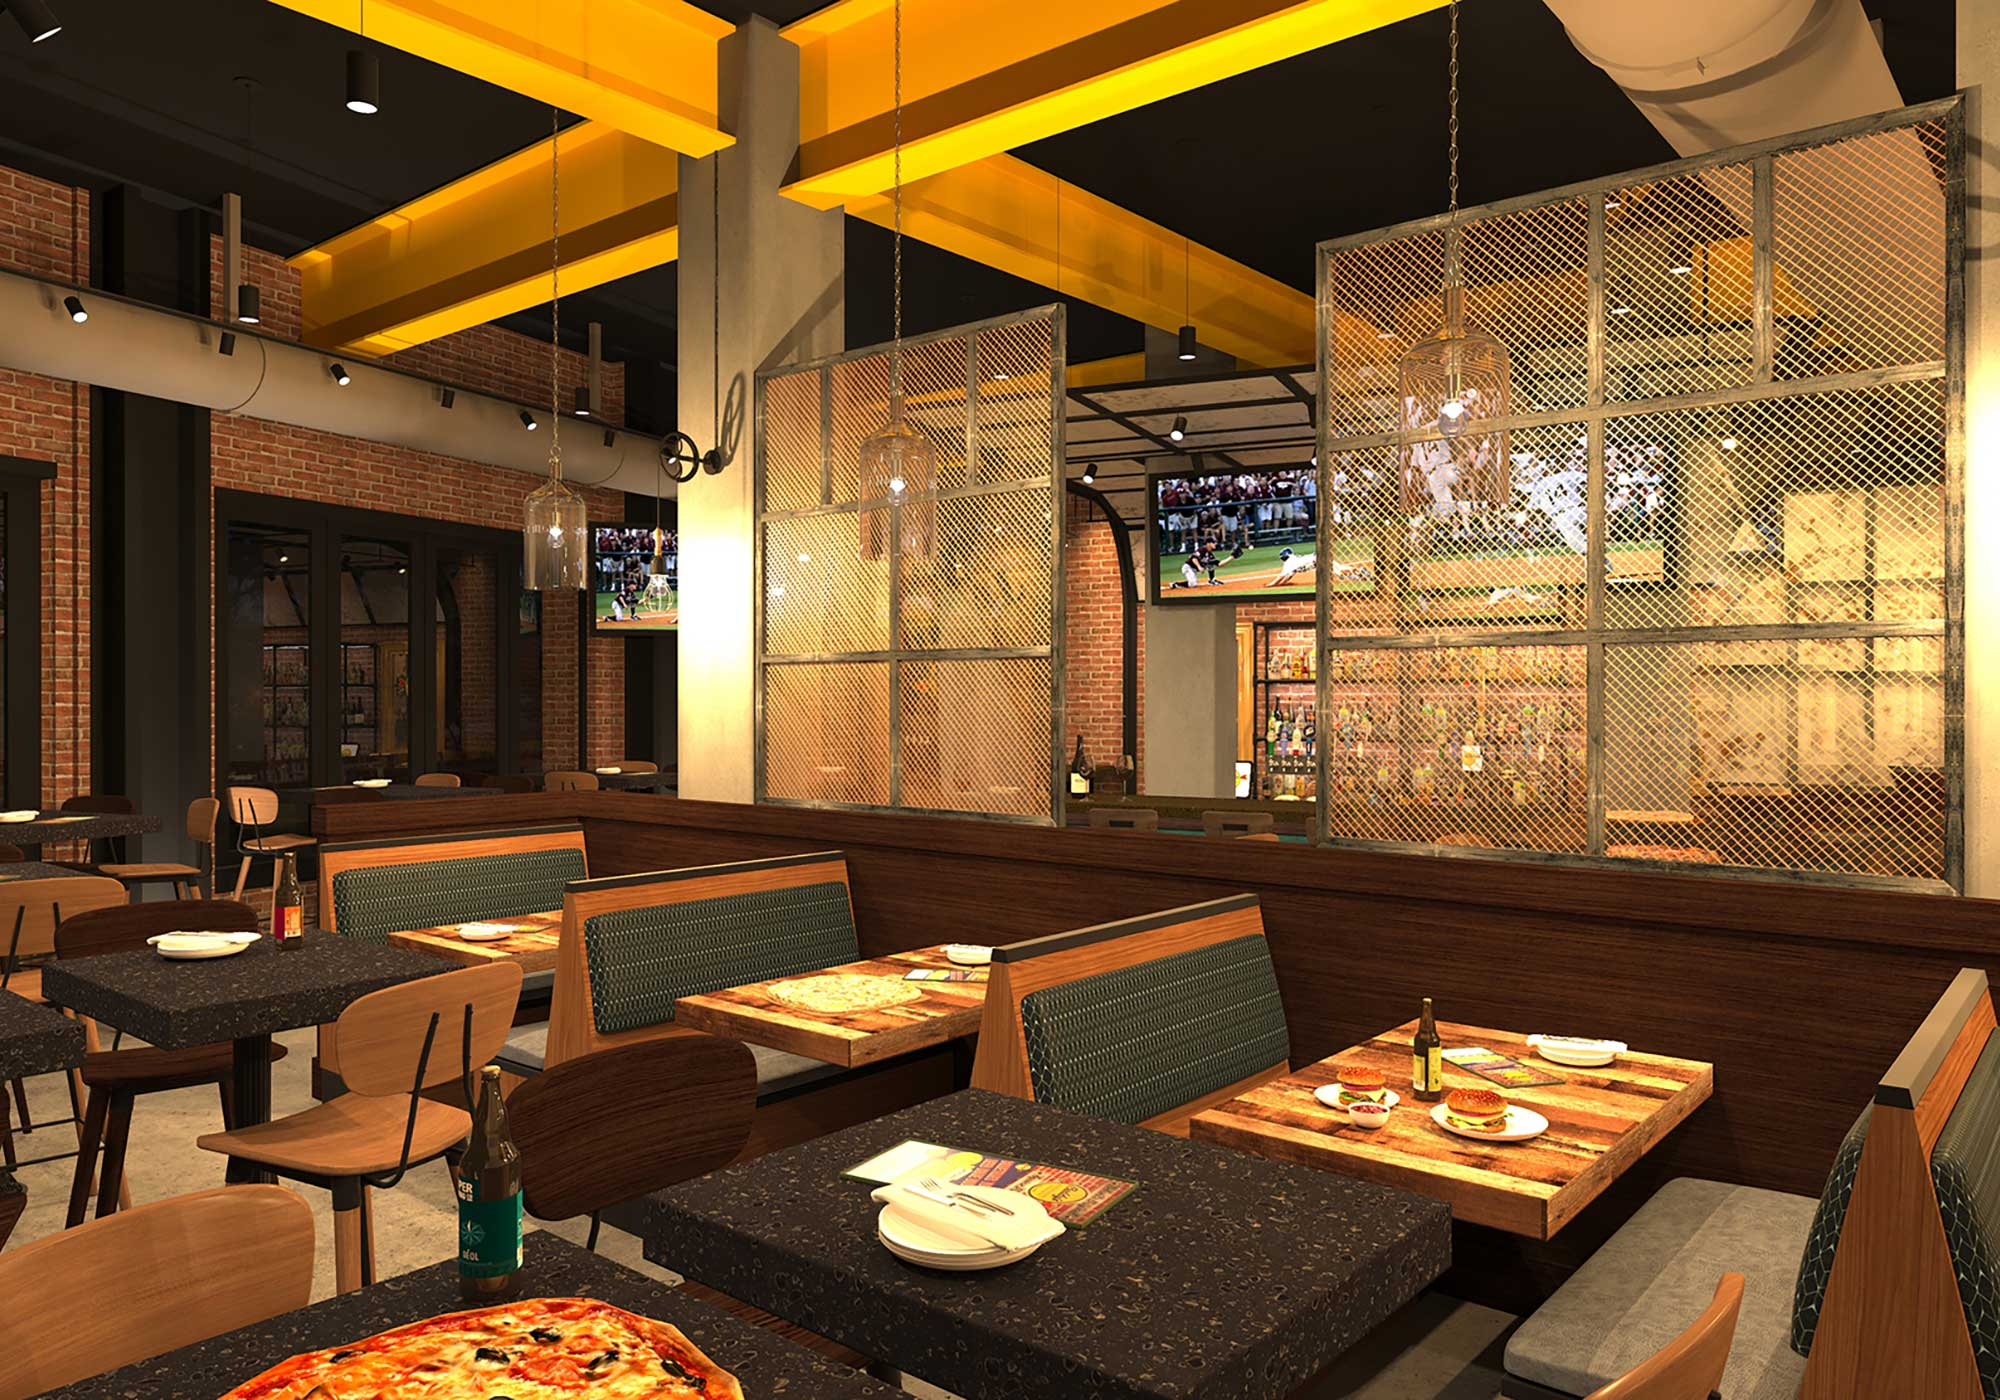 Multiple styles of dining areas - some booths, some tables